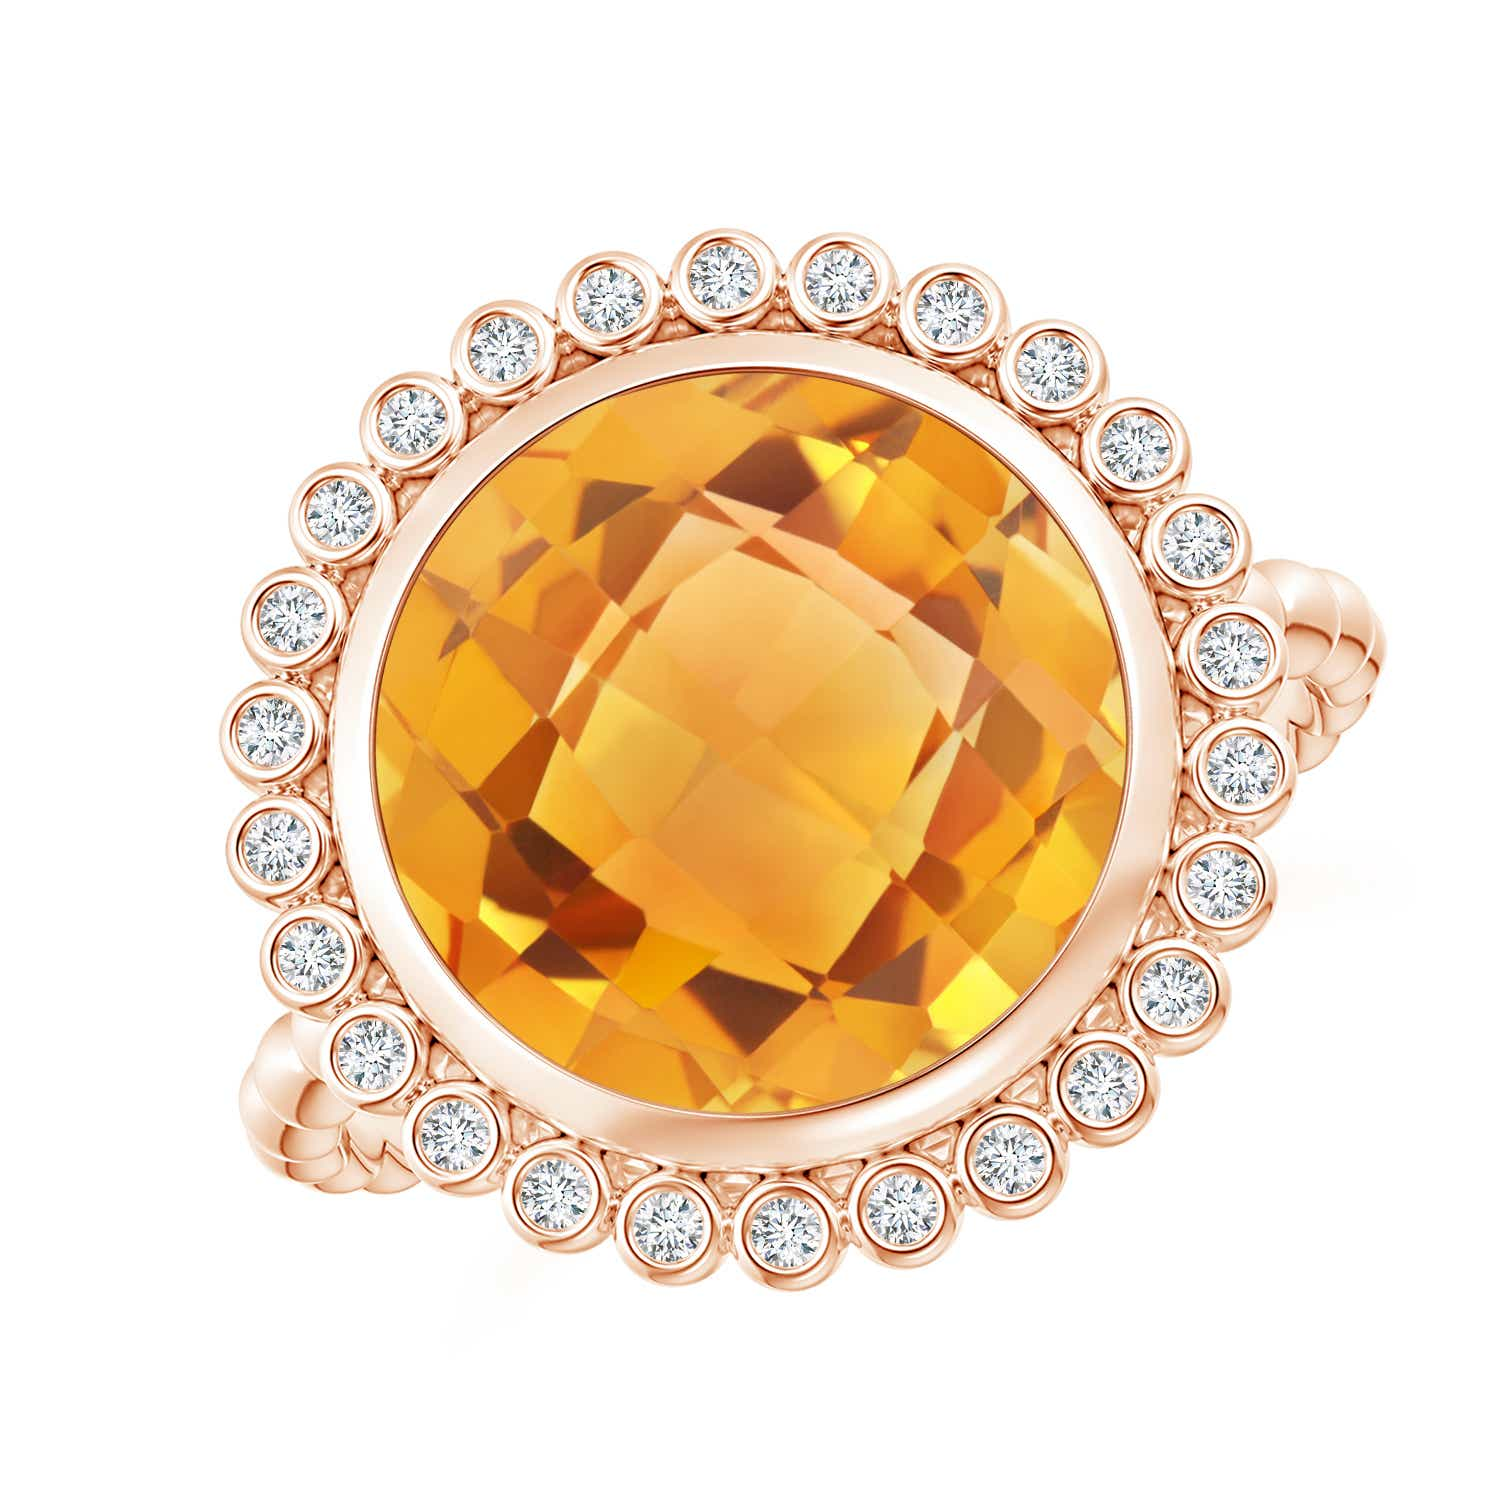 Angara Bezel-Set Round Citrine Ring with Beaded Shank uexsdK